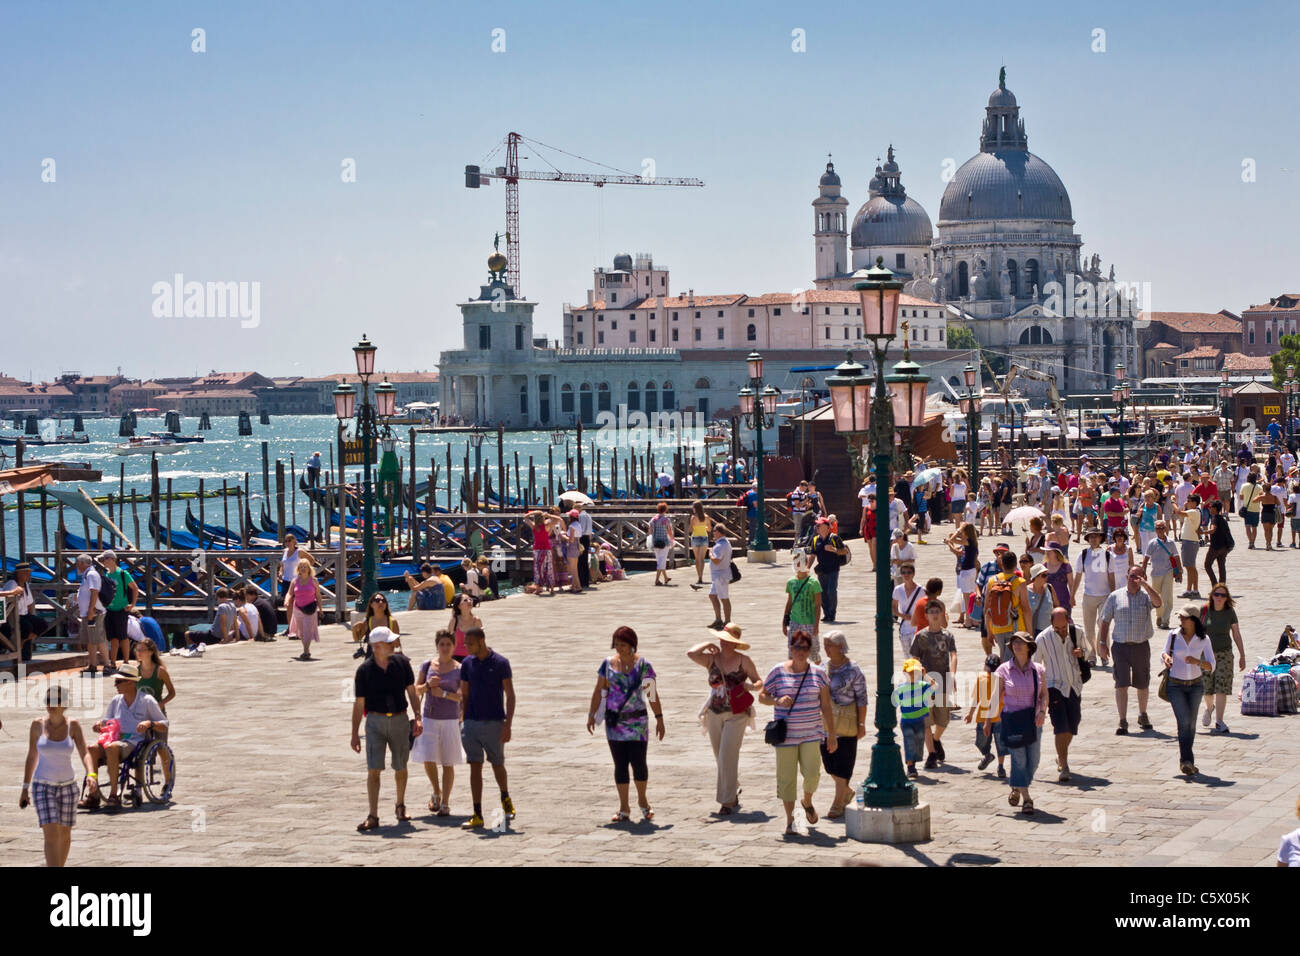 Tourists walking near Piazza San Marco on a bright sunny day in Venice Italy - Stock Image